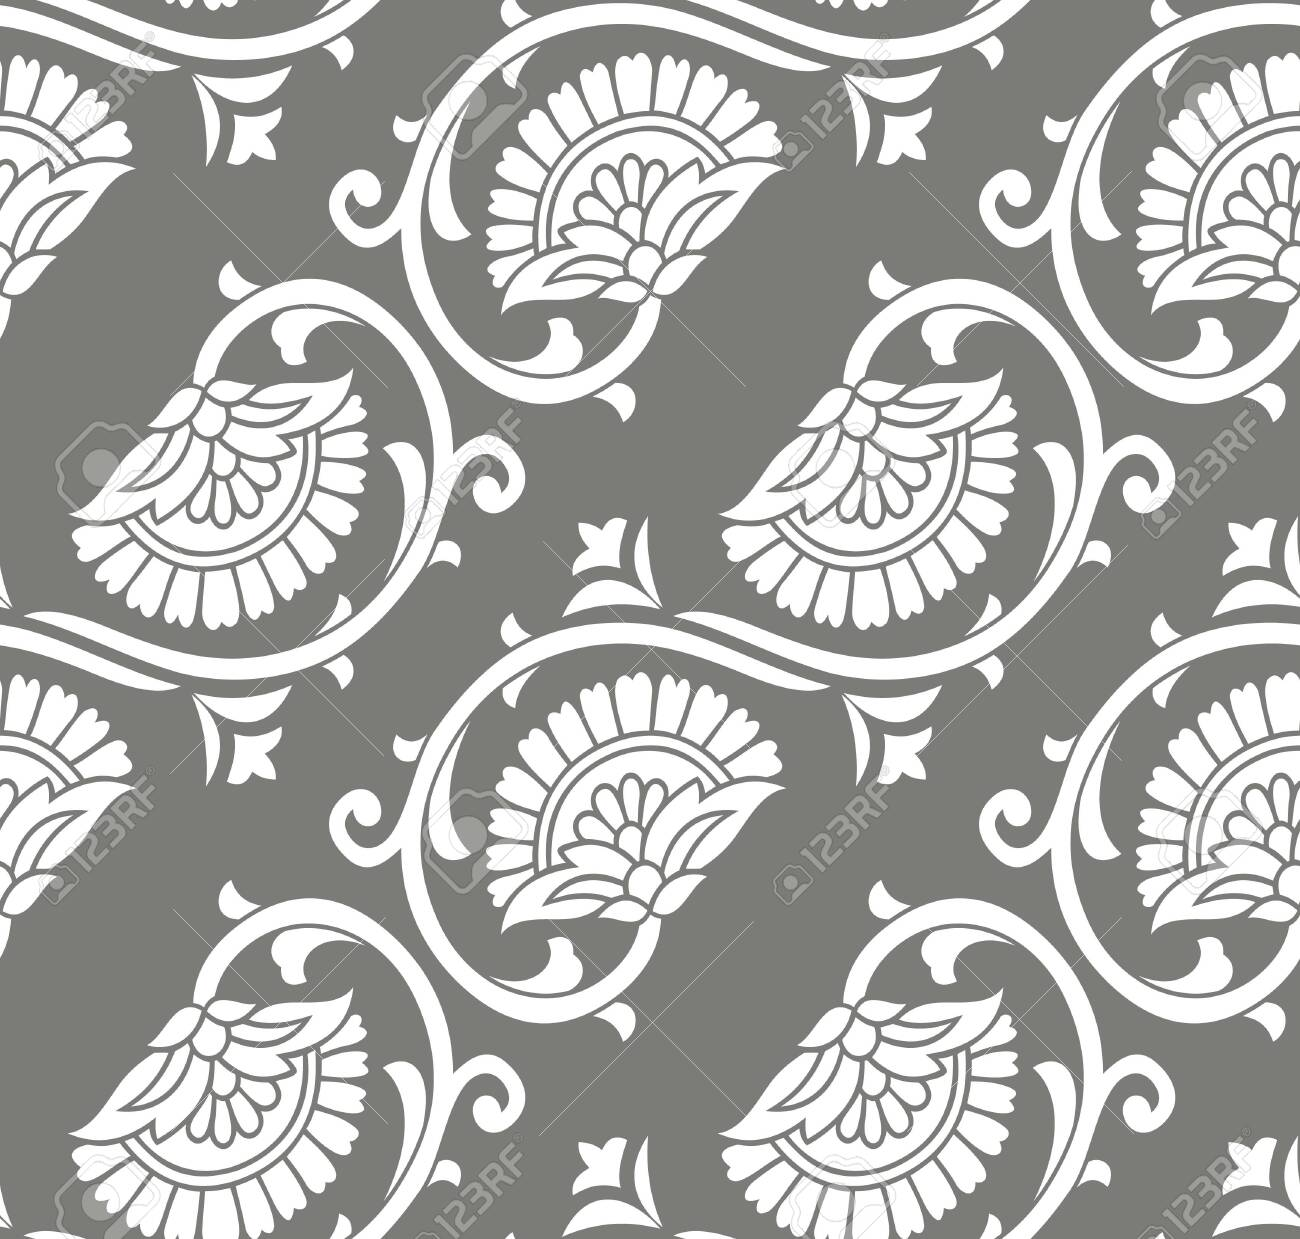 Seamless Silver Floral Wallpaper Design Royalty Free Cliparts